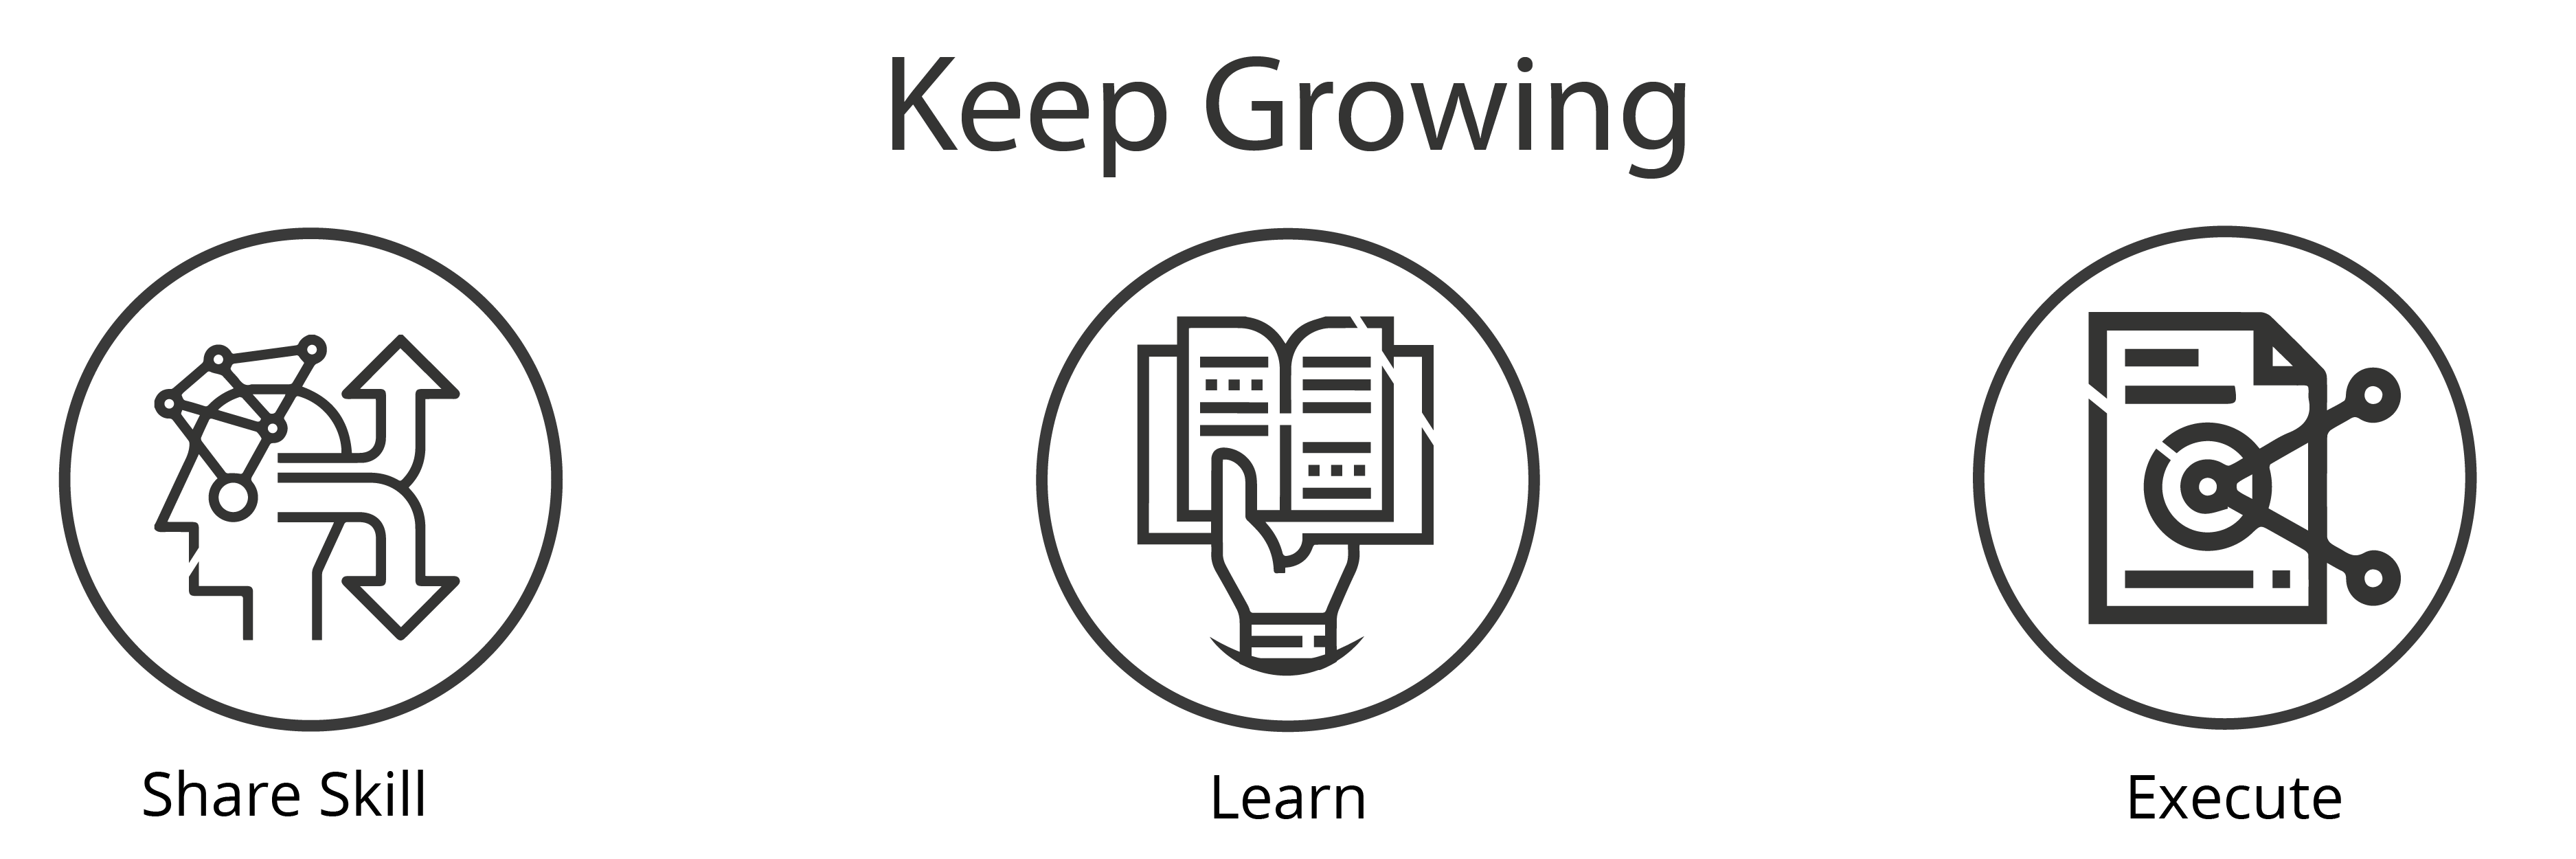 Keep Growing: Sharing skills, Learn, Execute